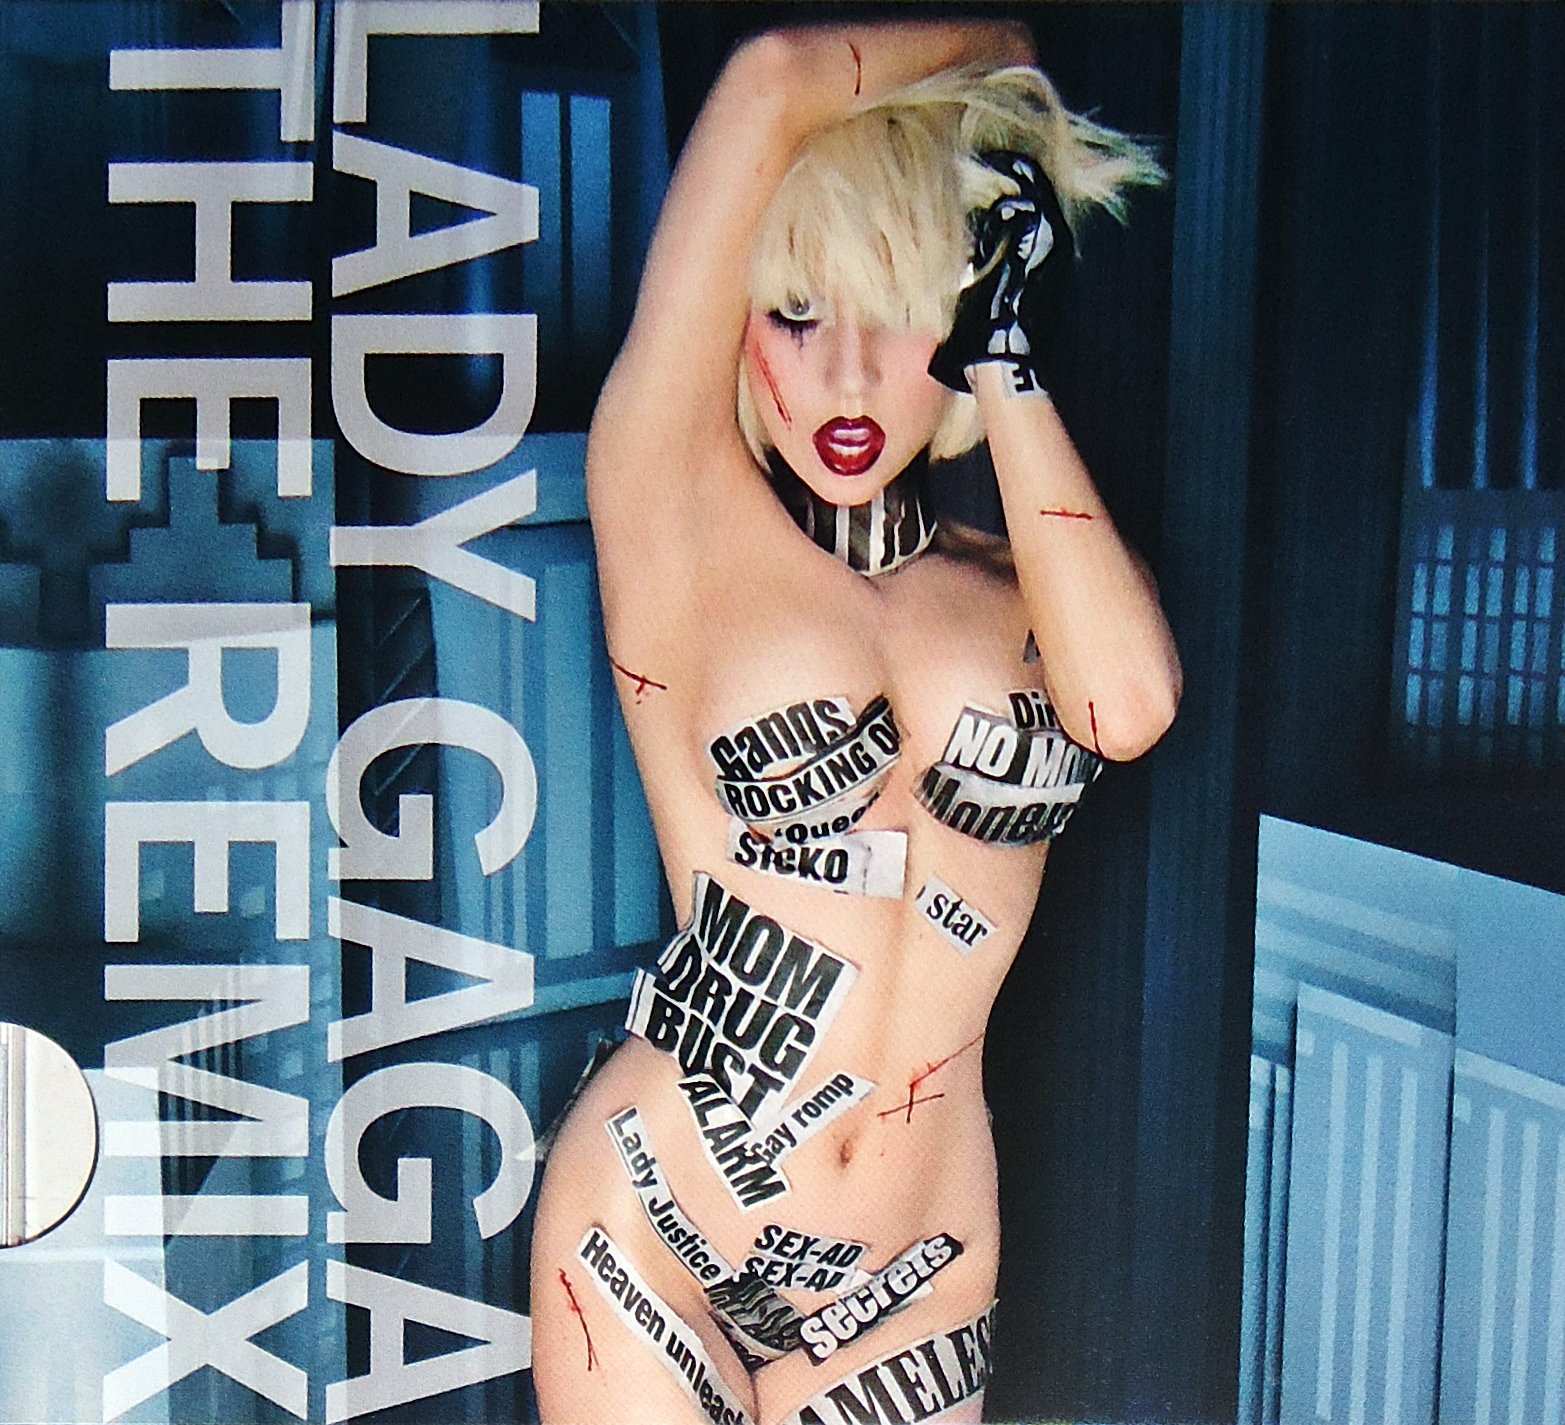 Lovegame Lady Gaga: My Collection: Lady Gaga » The Remix (MusicPac) [Brasil]